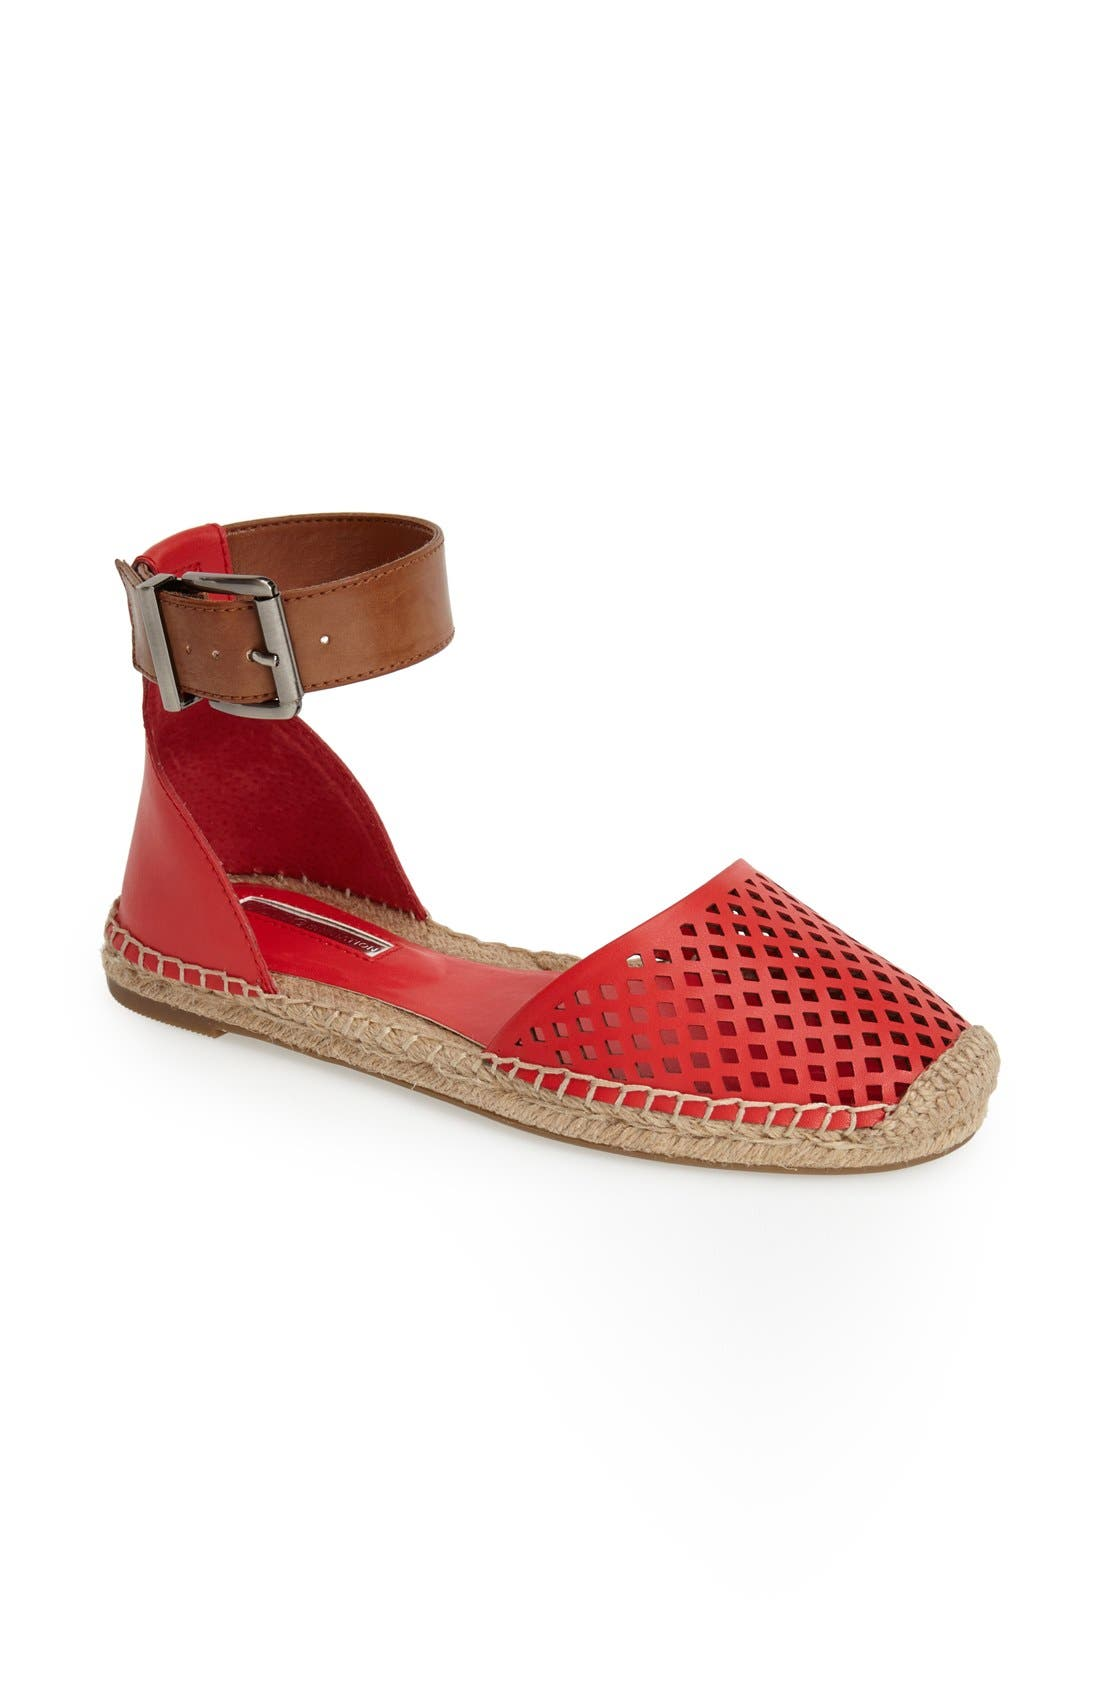 Alternate Image 1 Selected - BCBGENERATION 'Felicity 2' Ankle Strap Espadrille Flat (Women)